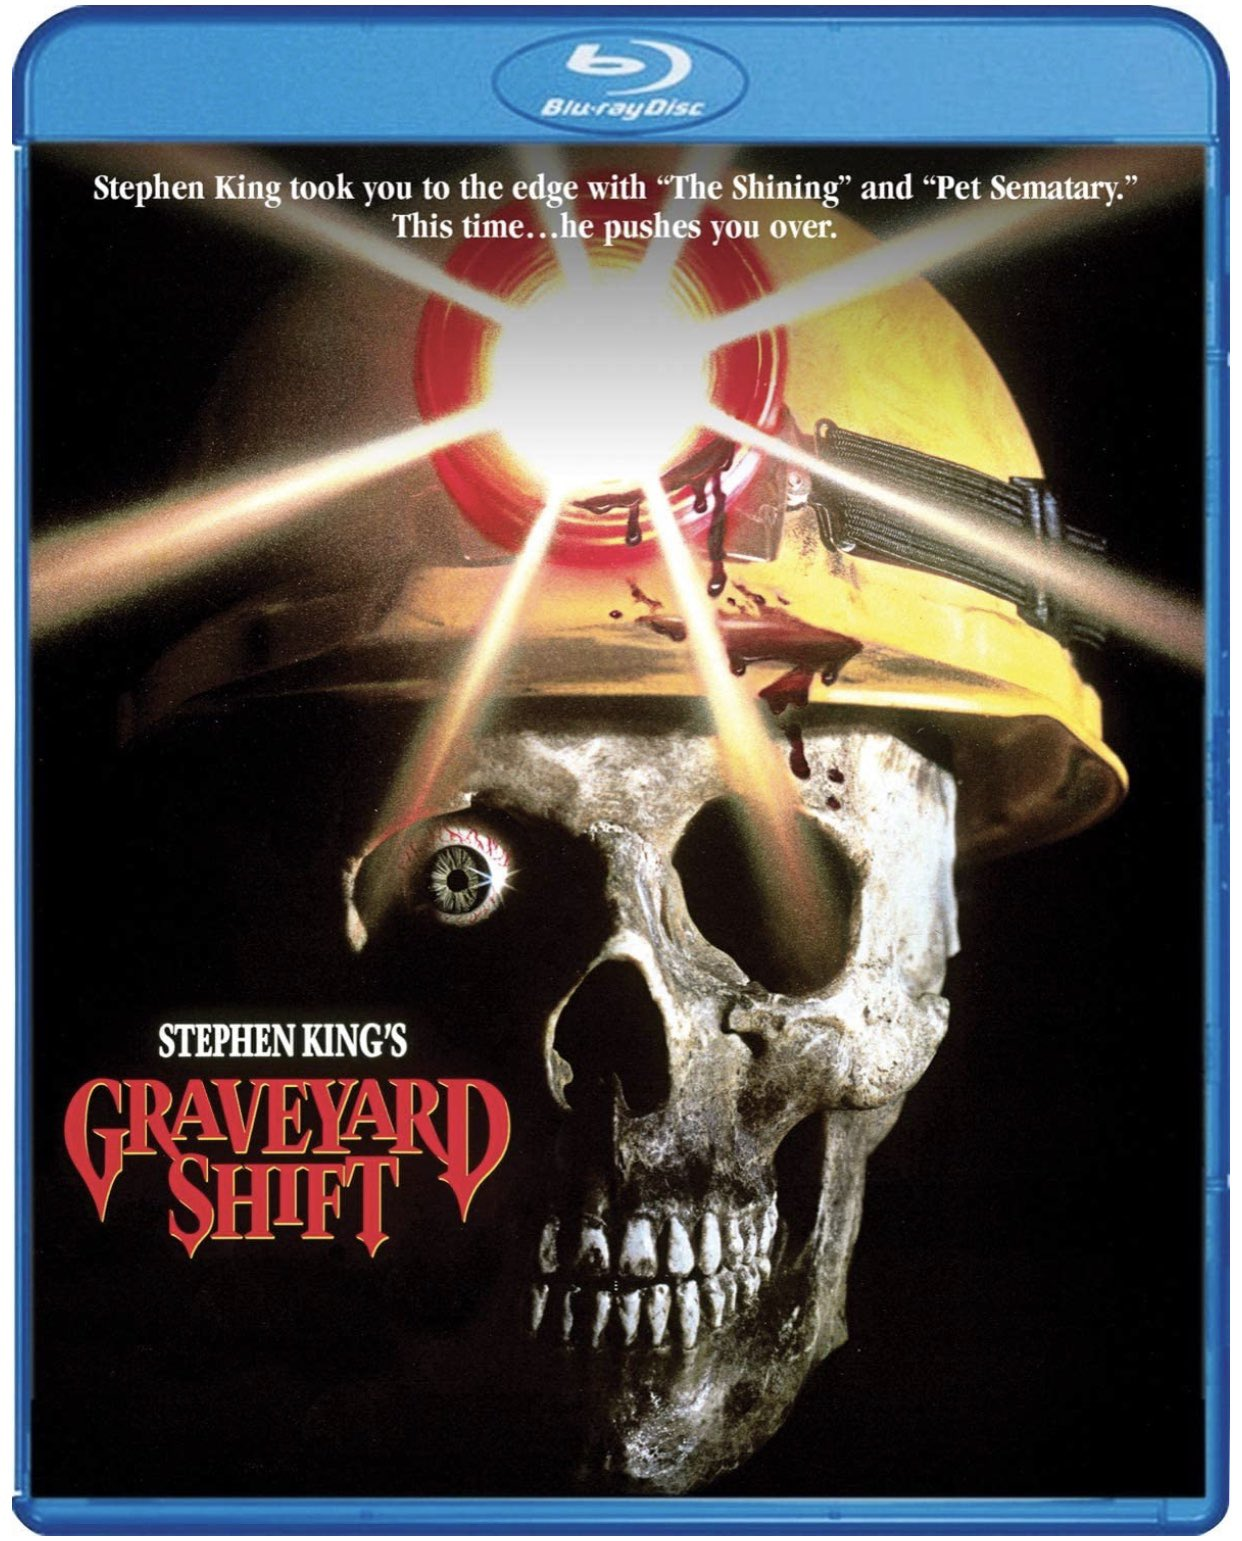 GRAVEYARD SHIFT SPECIAL FEATURES ANNOUNCED